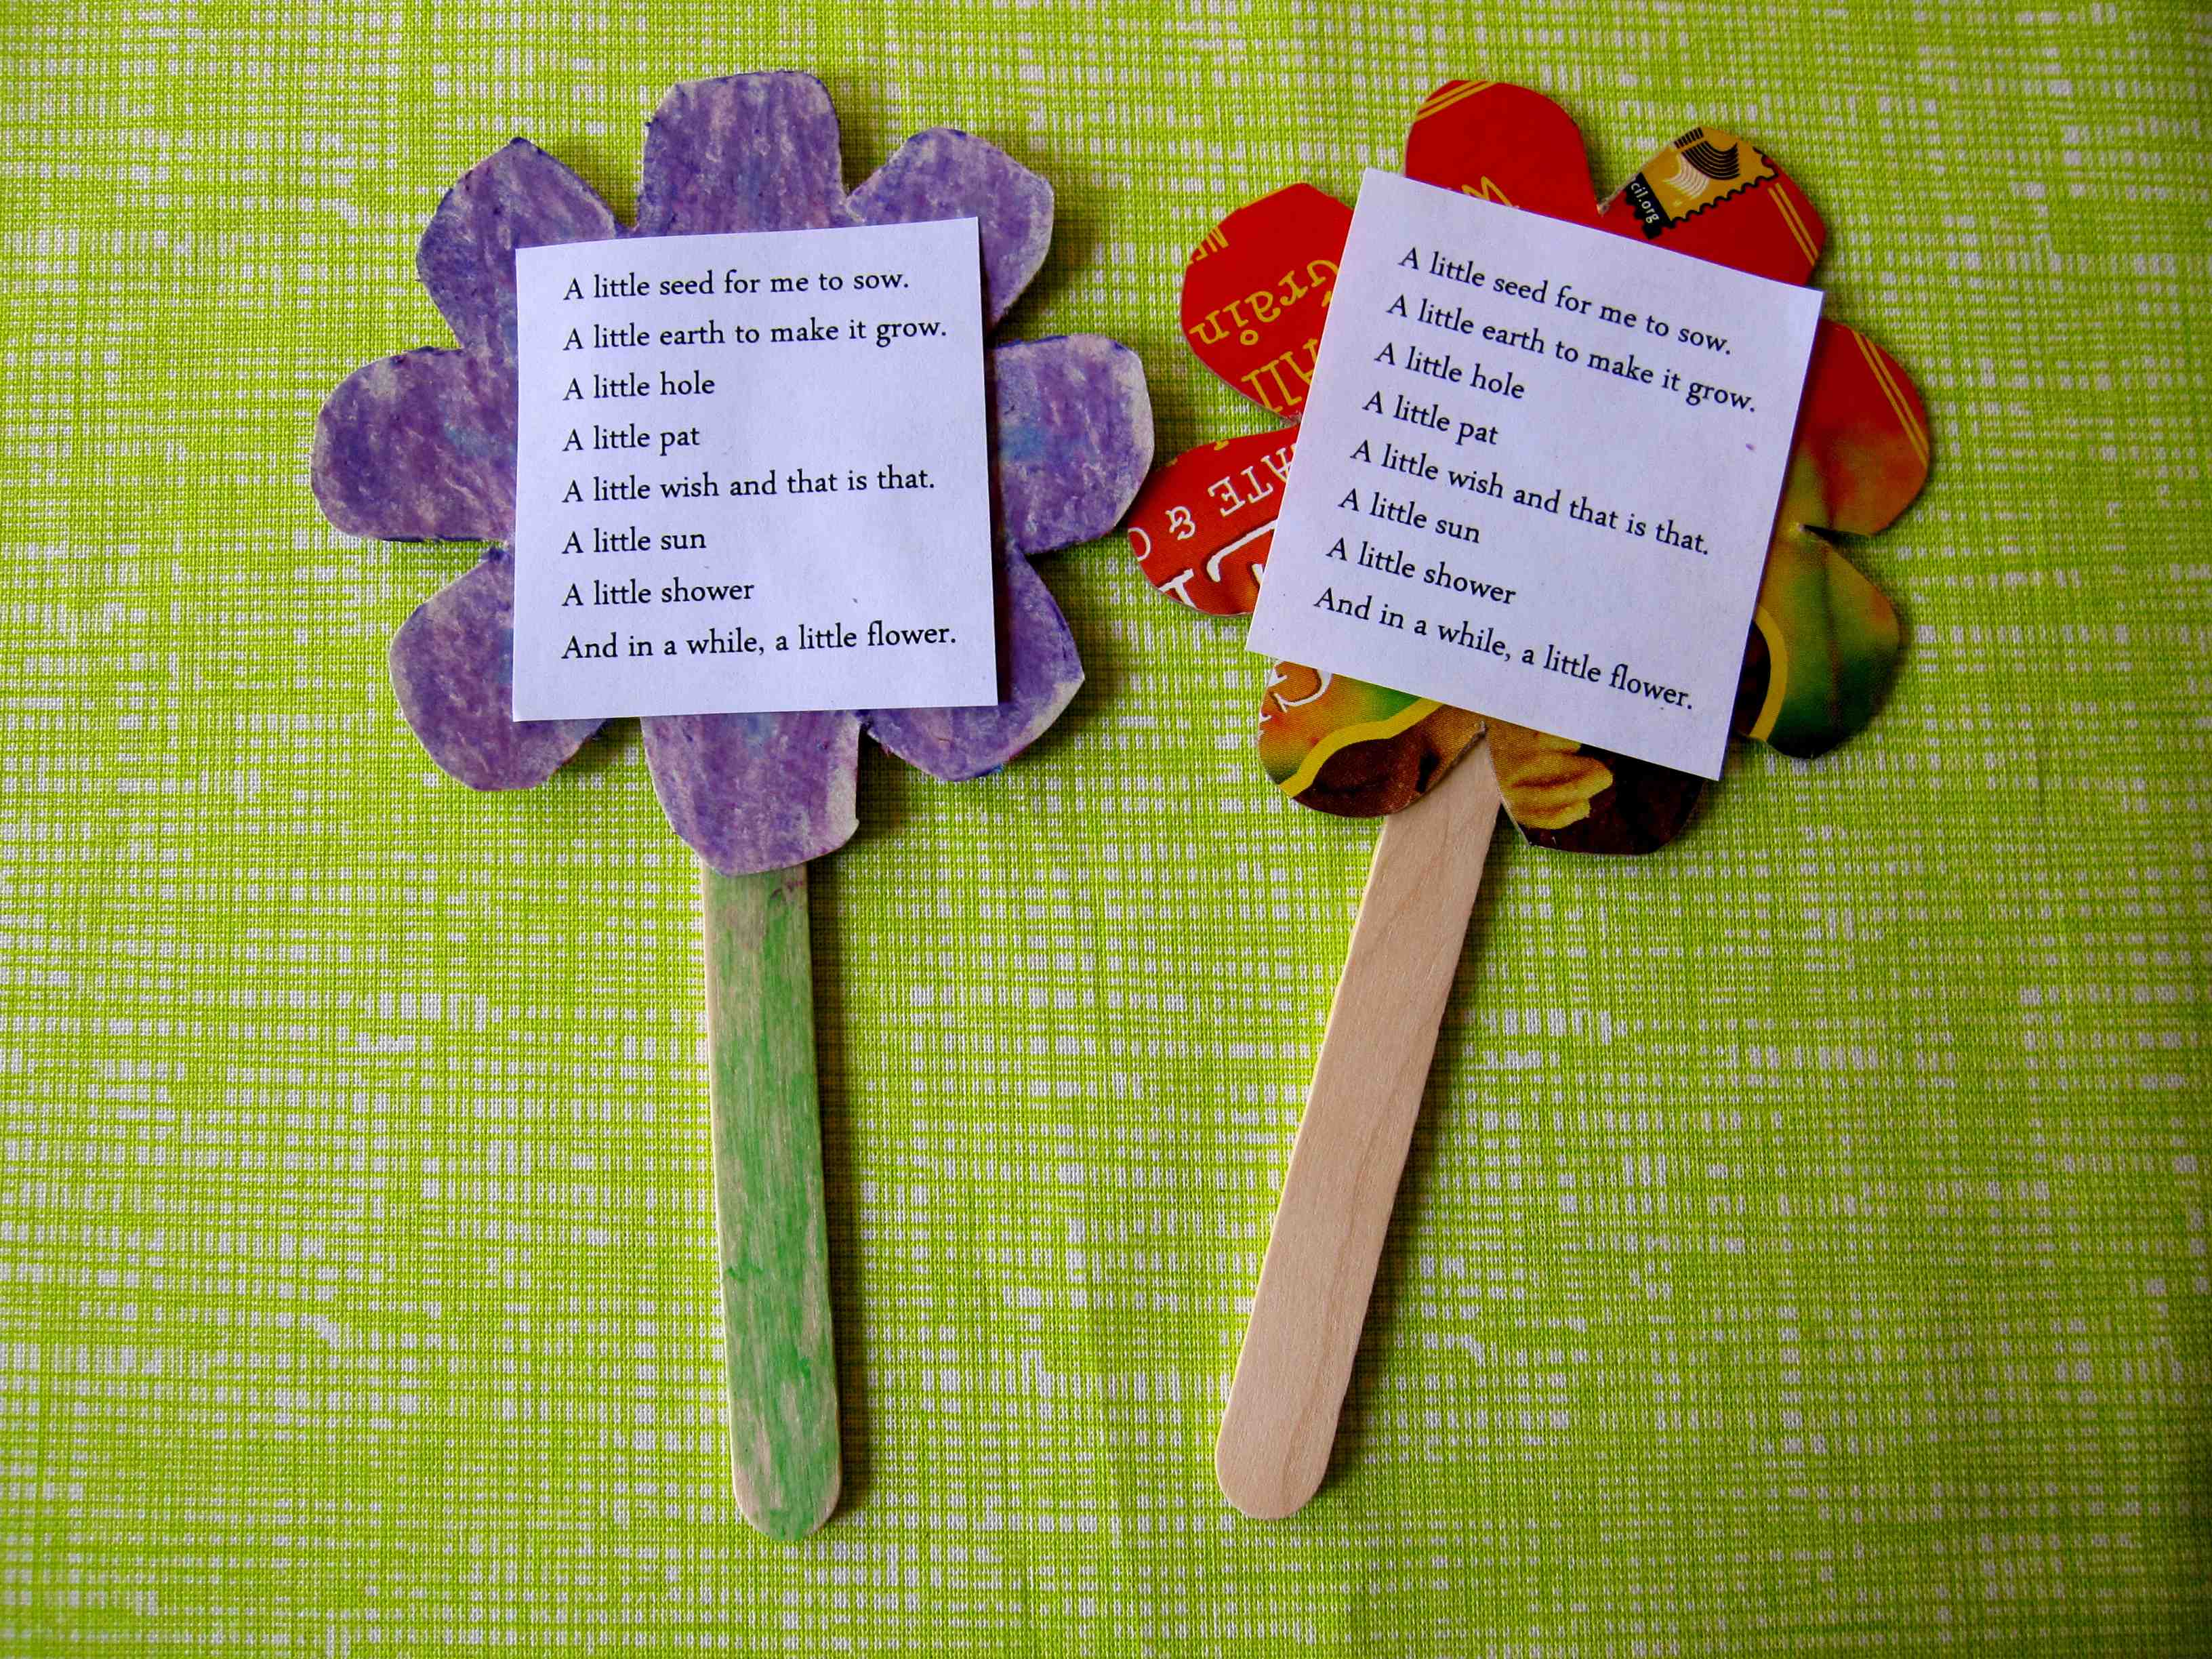 Uncategorized Flower Poem poetry in nature sturdy for common things and then decorate their flowers whichever way they preferred could use the printed side of cardboard box as front glue poem on or th